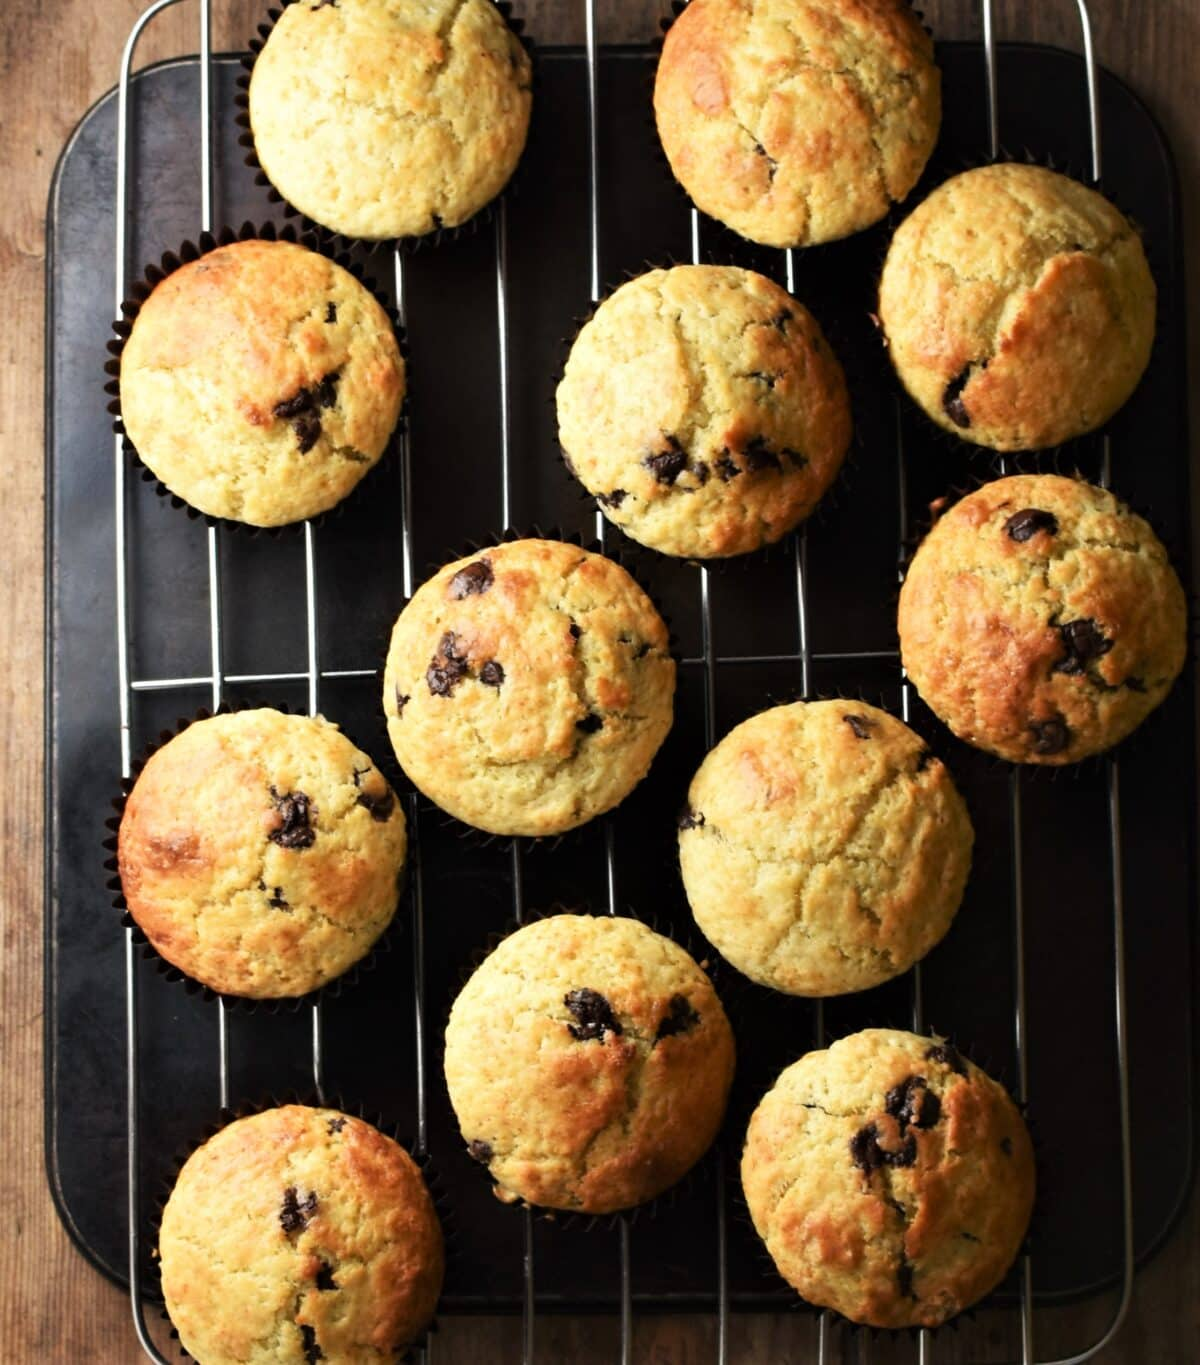 Lime chocolate chip muffins on top of rack and black tray.